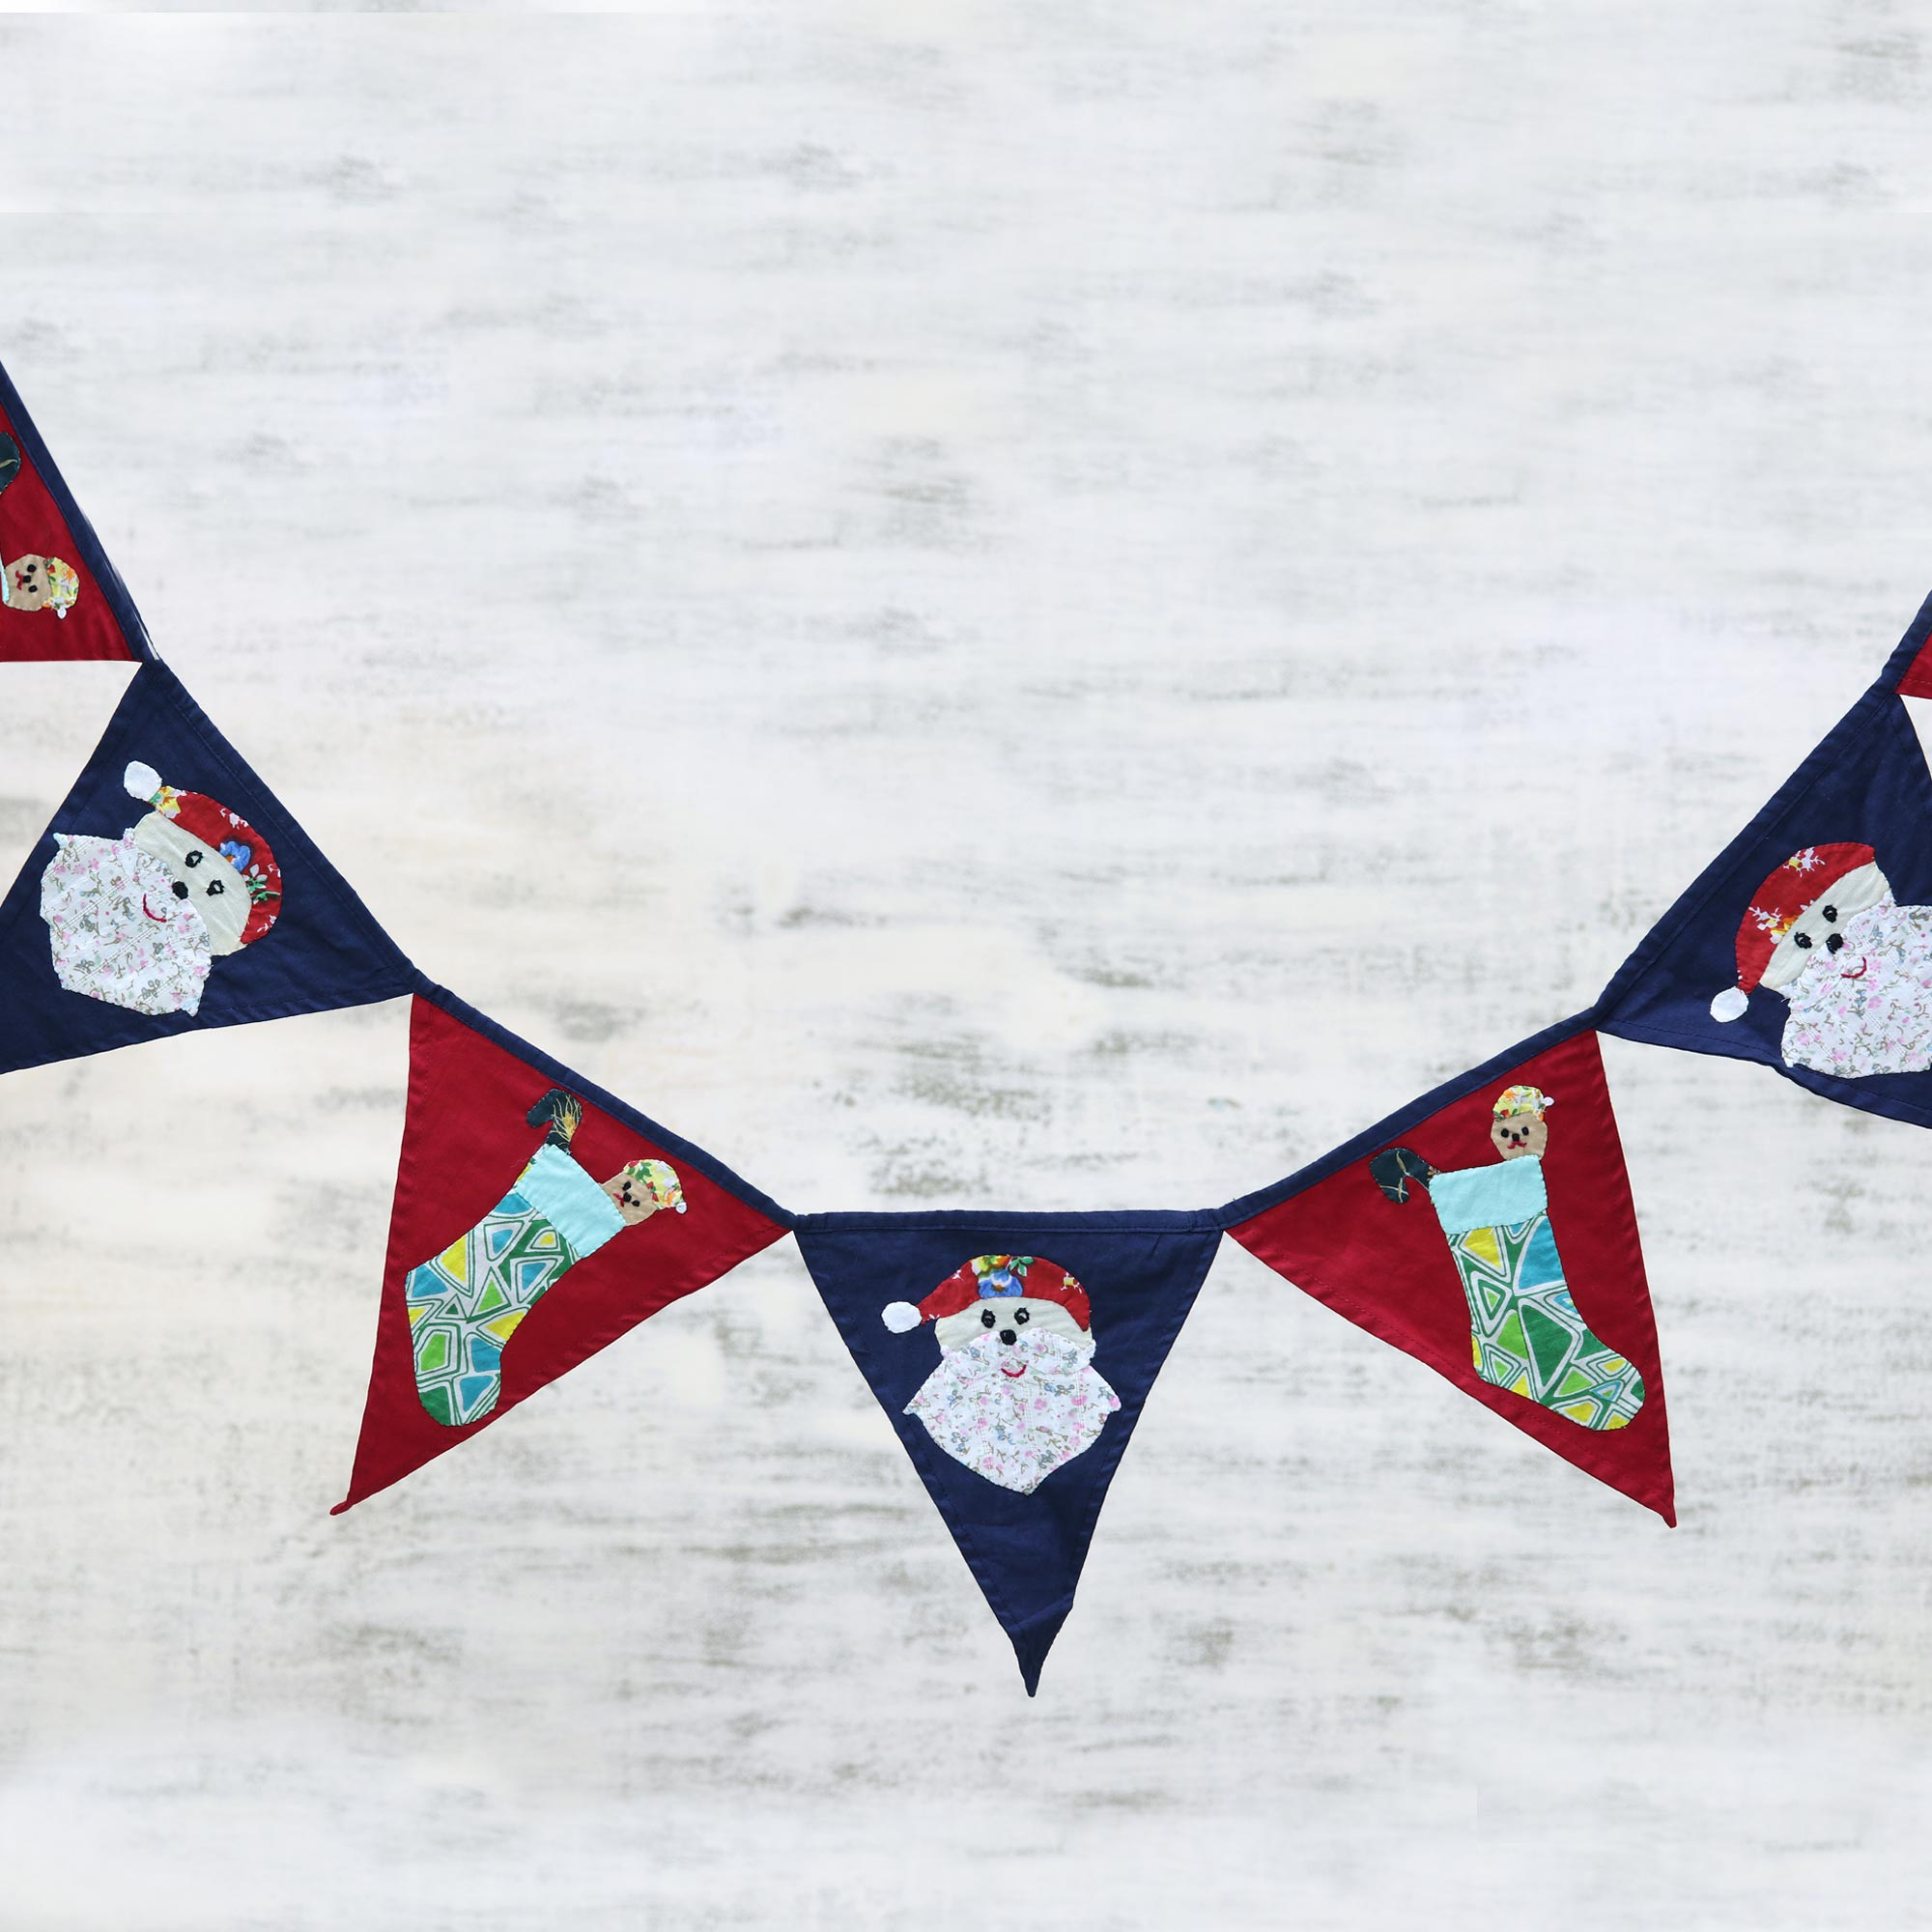 Festive Christmas Red and Navy Cotton Christmas Bunting from India artisan hand crafted Unique Holiday Decor Treasures